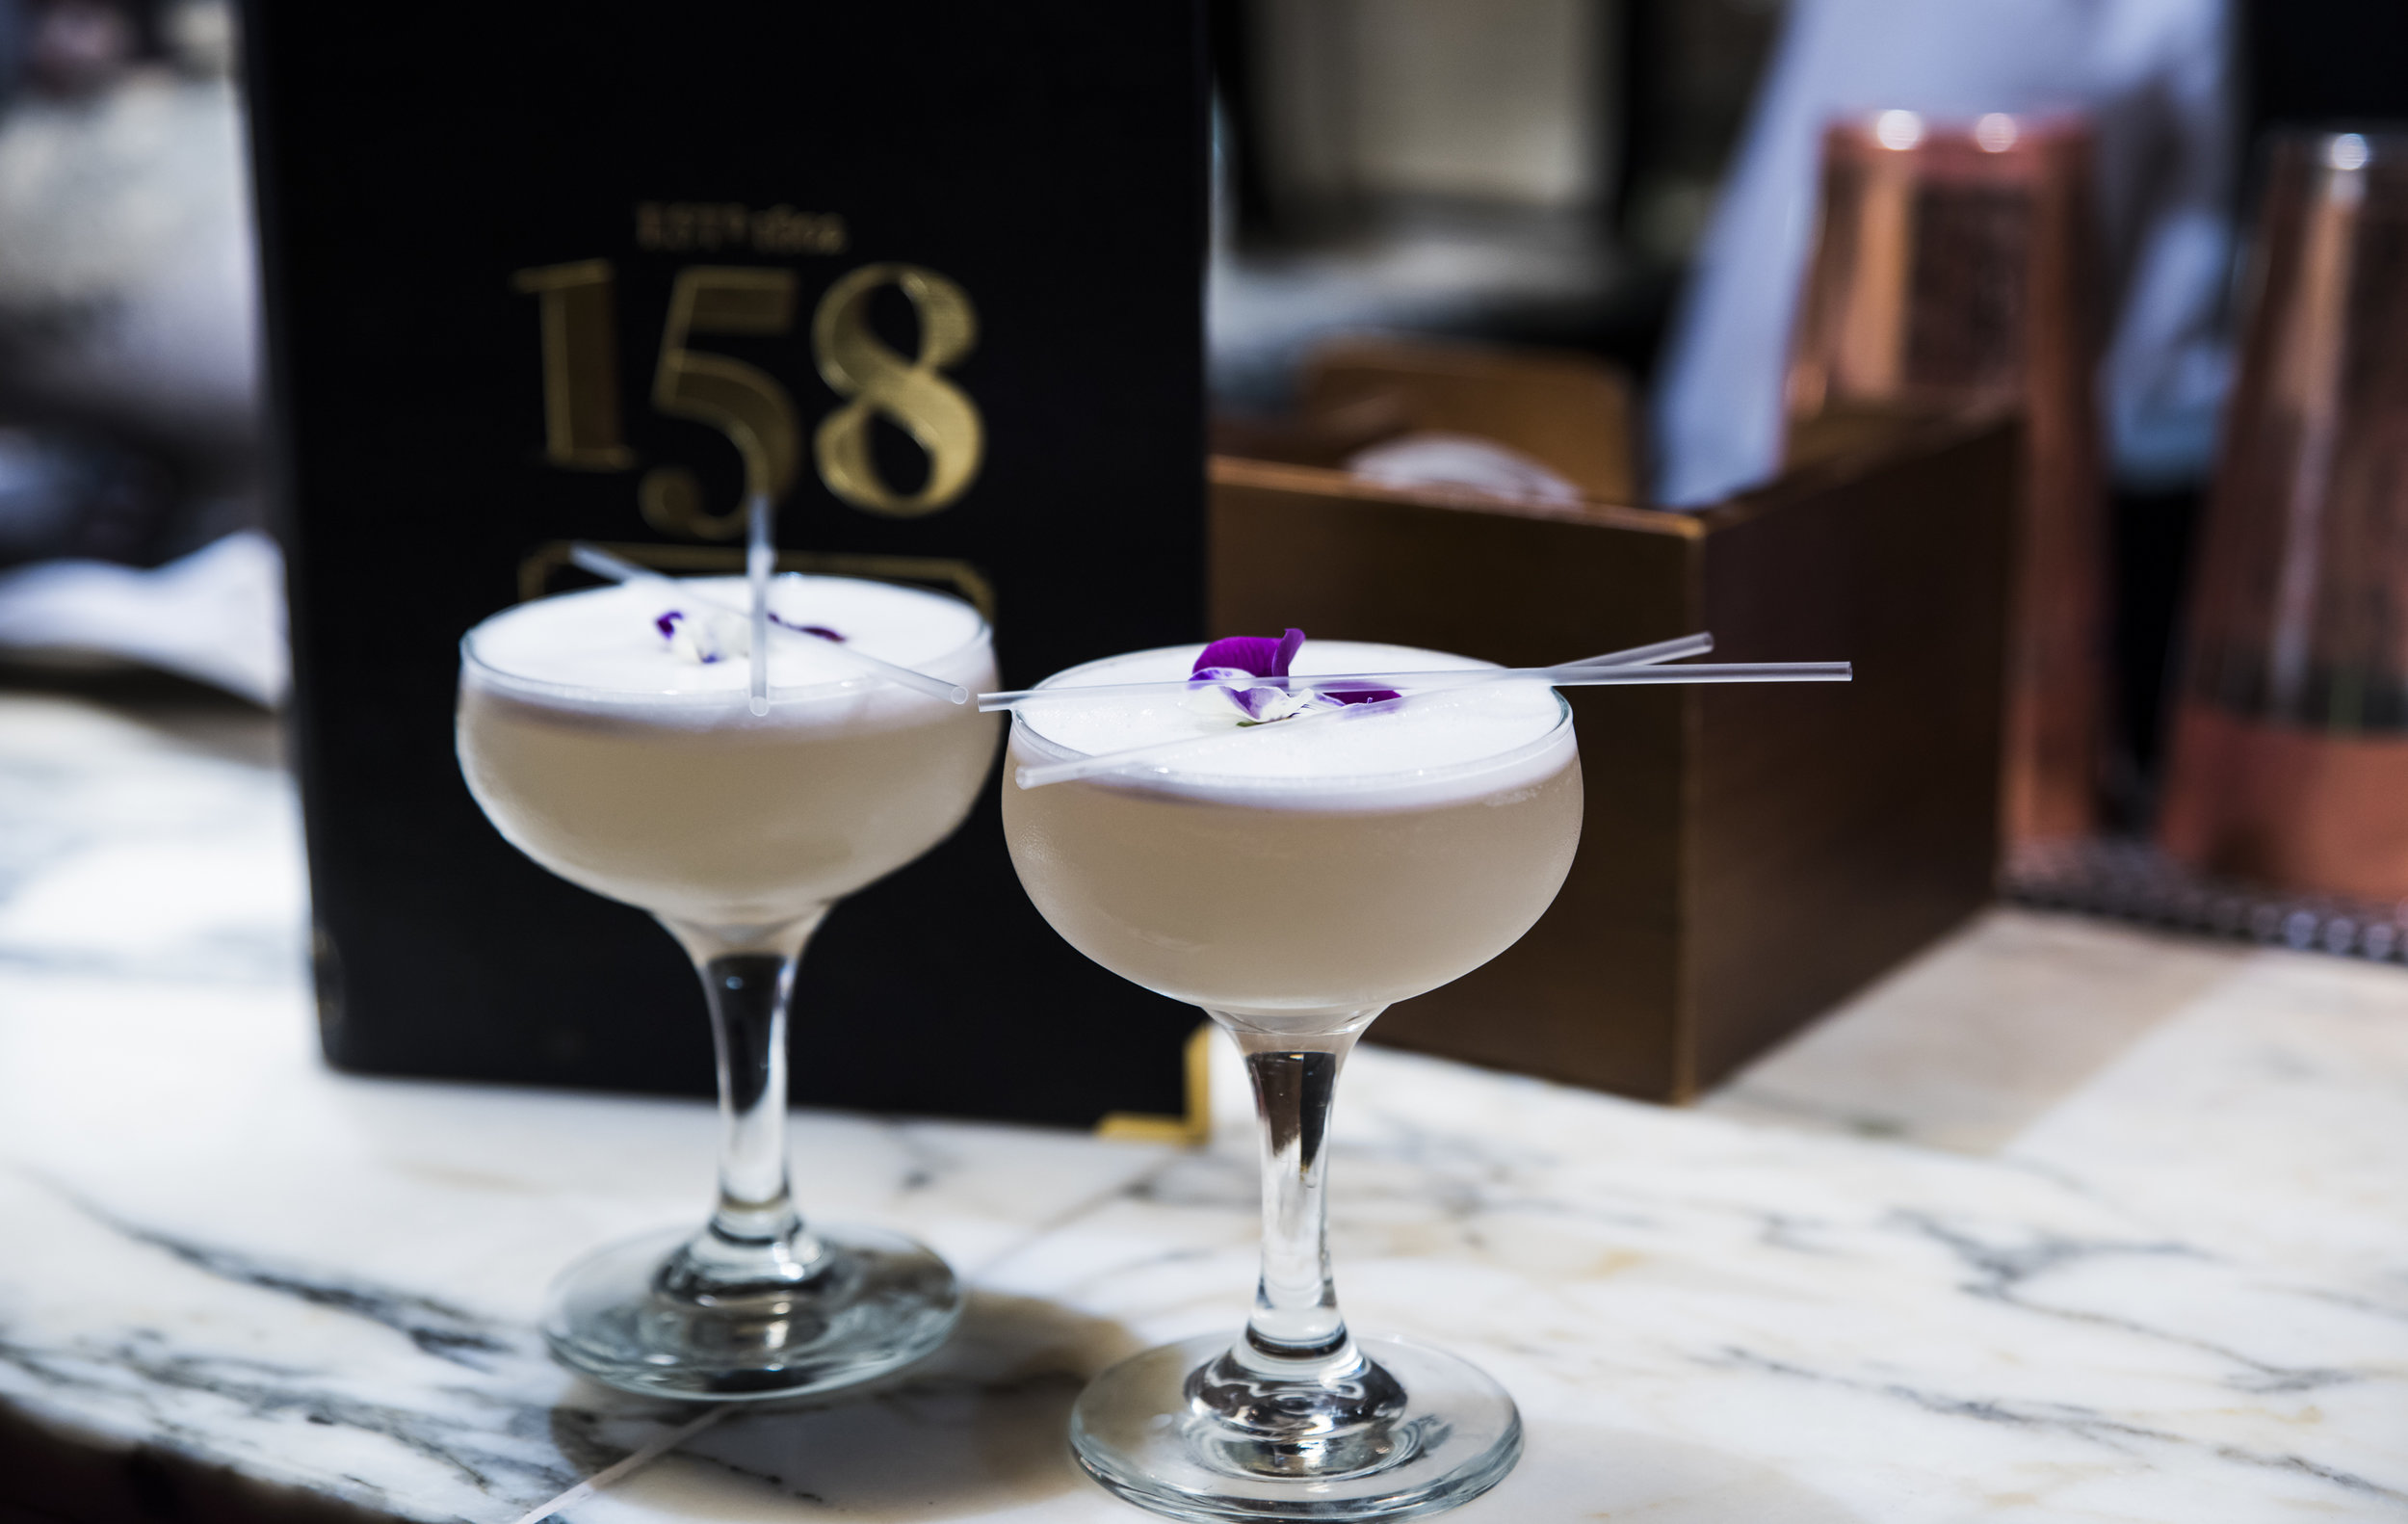 SIGNATURE COCKTAILS   All of our Signature Cocktails are just £5 each Sun - Fri in The 158 Club Lounge.